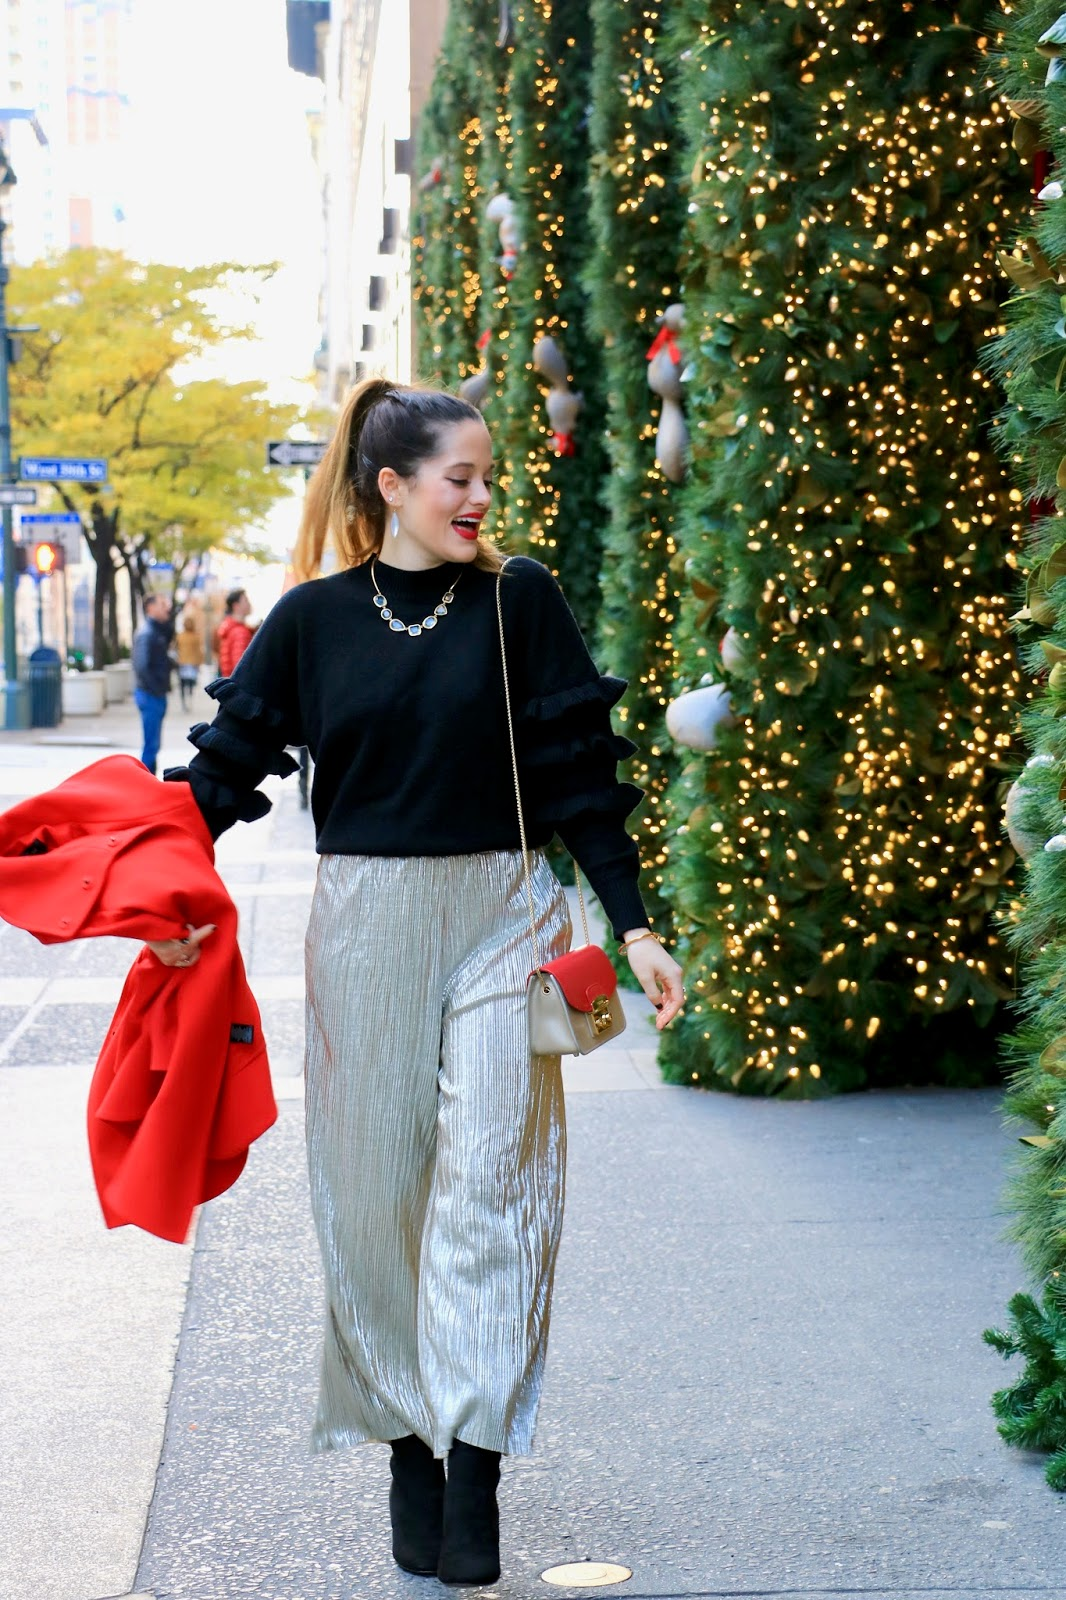 Nyc fashion blogger Kathleen Harper showing how to wear gold pants